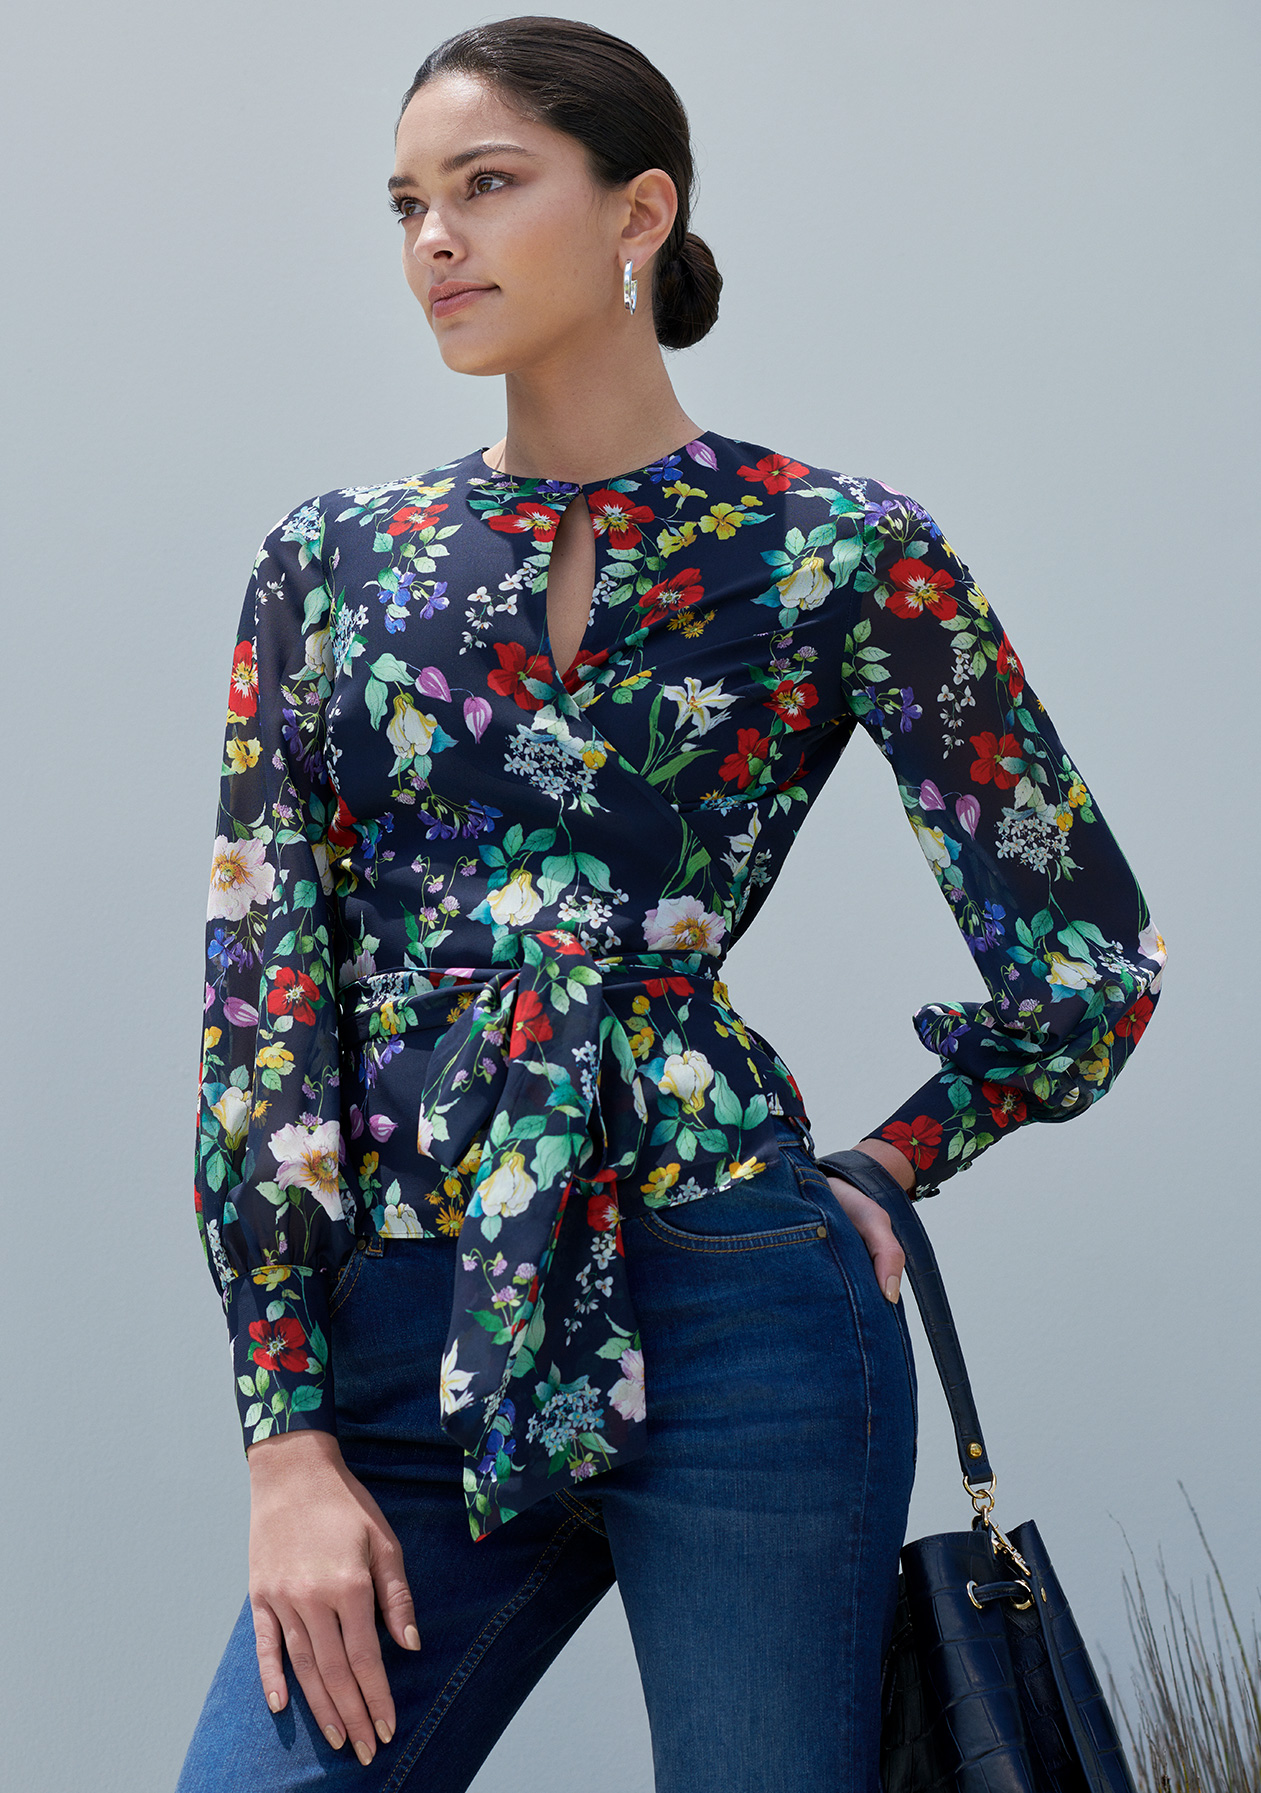 A brown haired woman poses in the Hobbs Meadow Blouse, a navy floral printed wrap top styled with denim jeans and a leather bucket bag